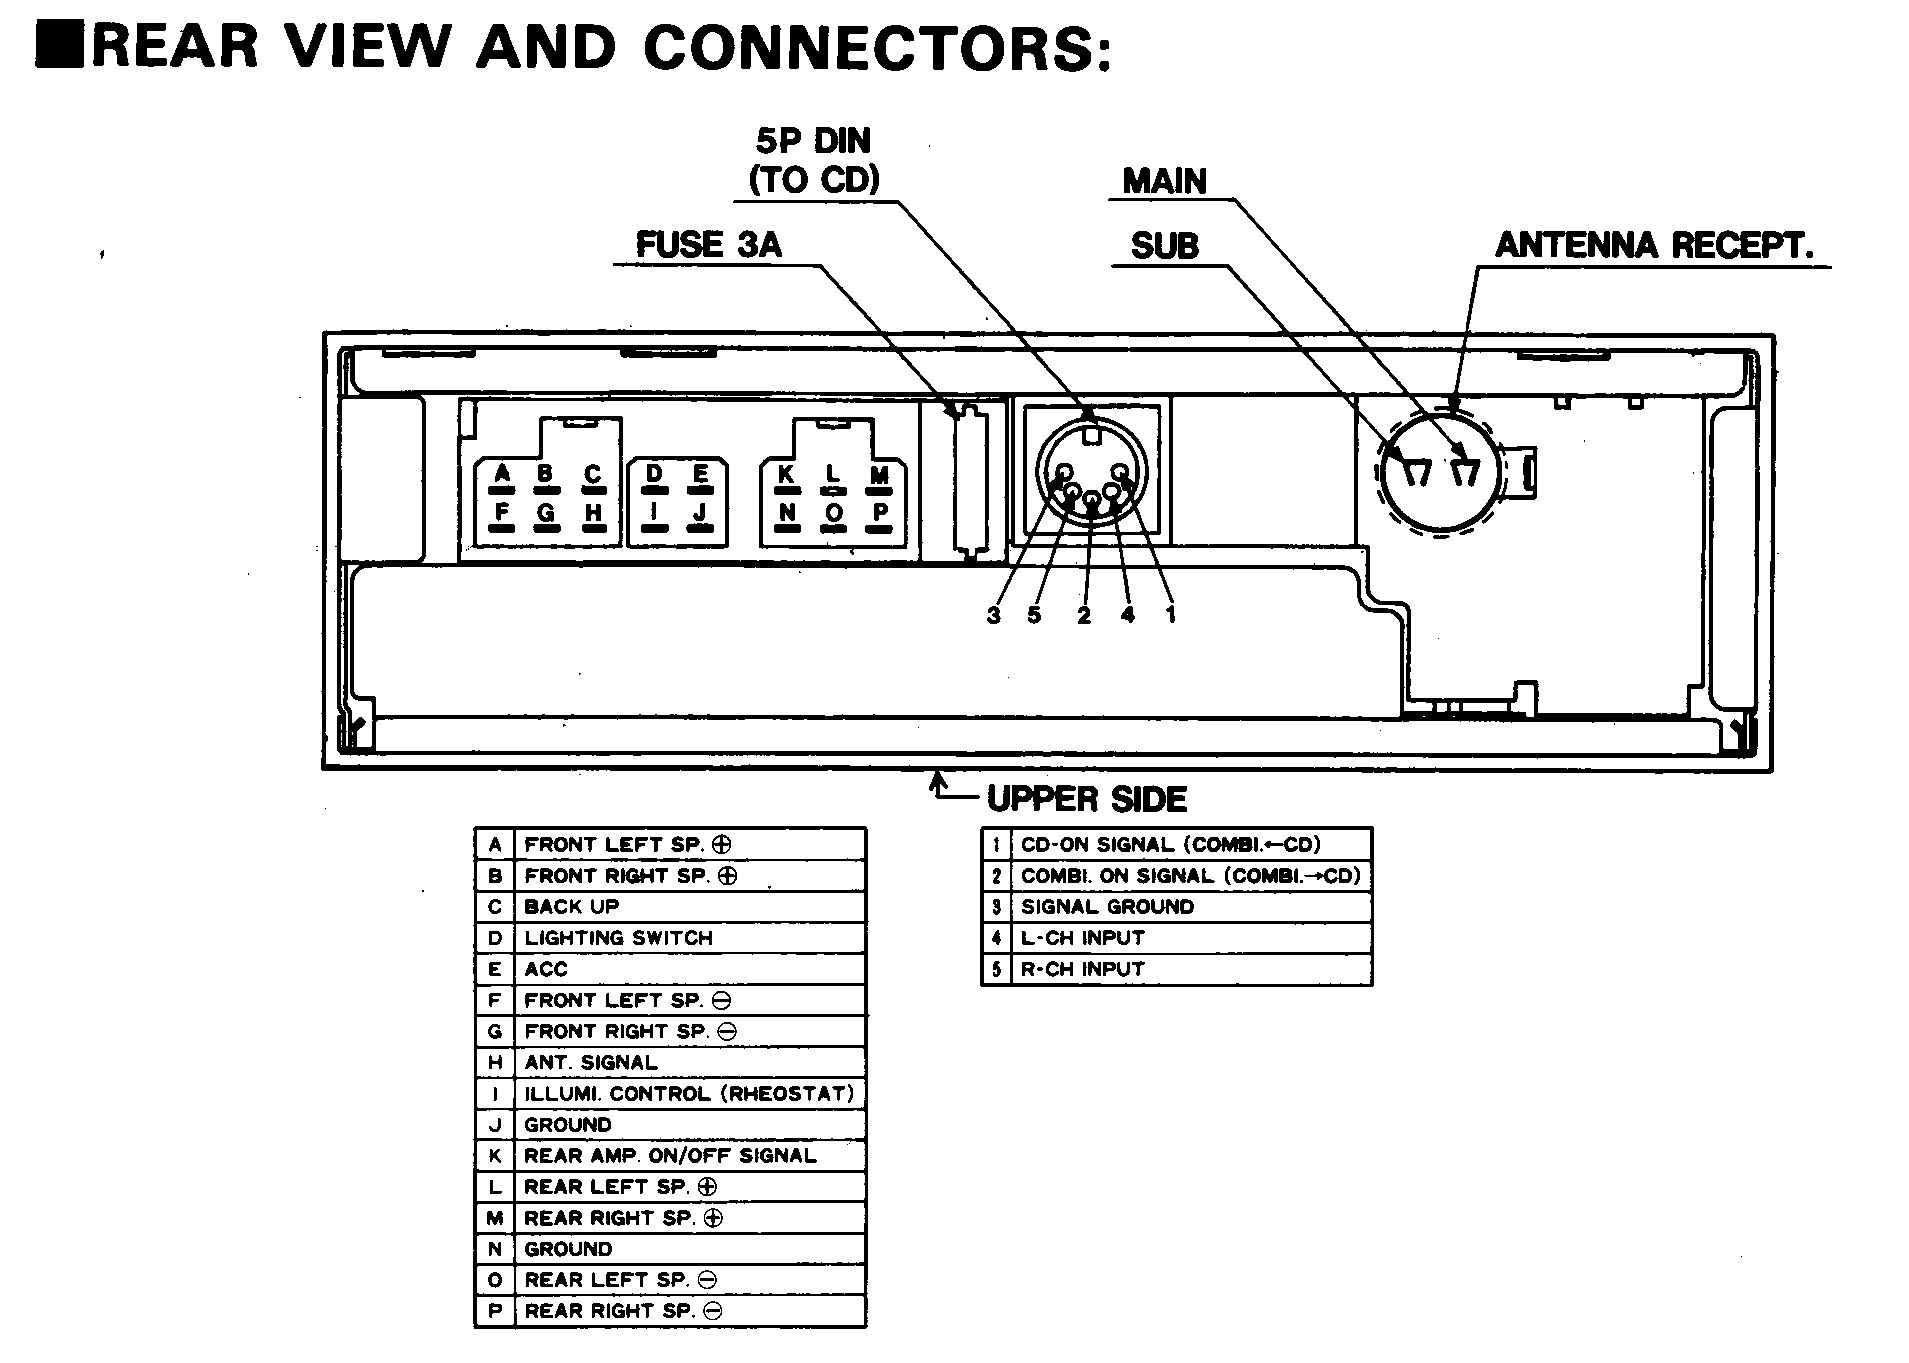 nissan sentra wiring diagram nissan wiring diagram color codes schematics and wiring diagrams 2001 nissan sentra gxe stereo wiring diagram